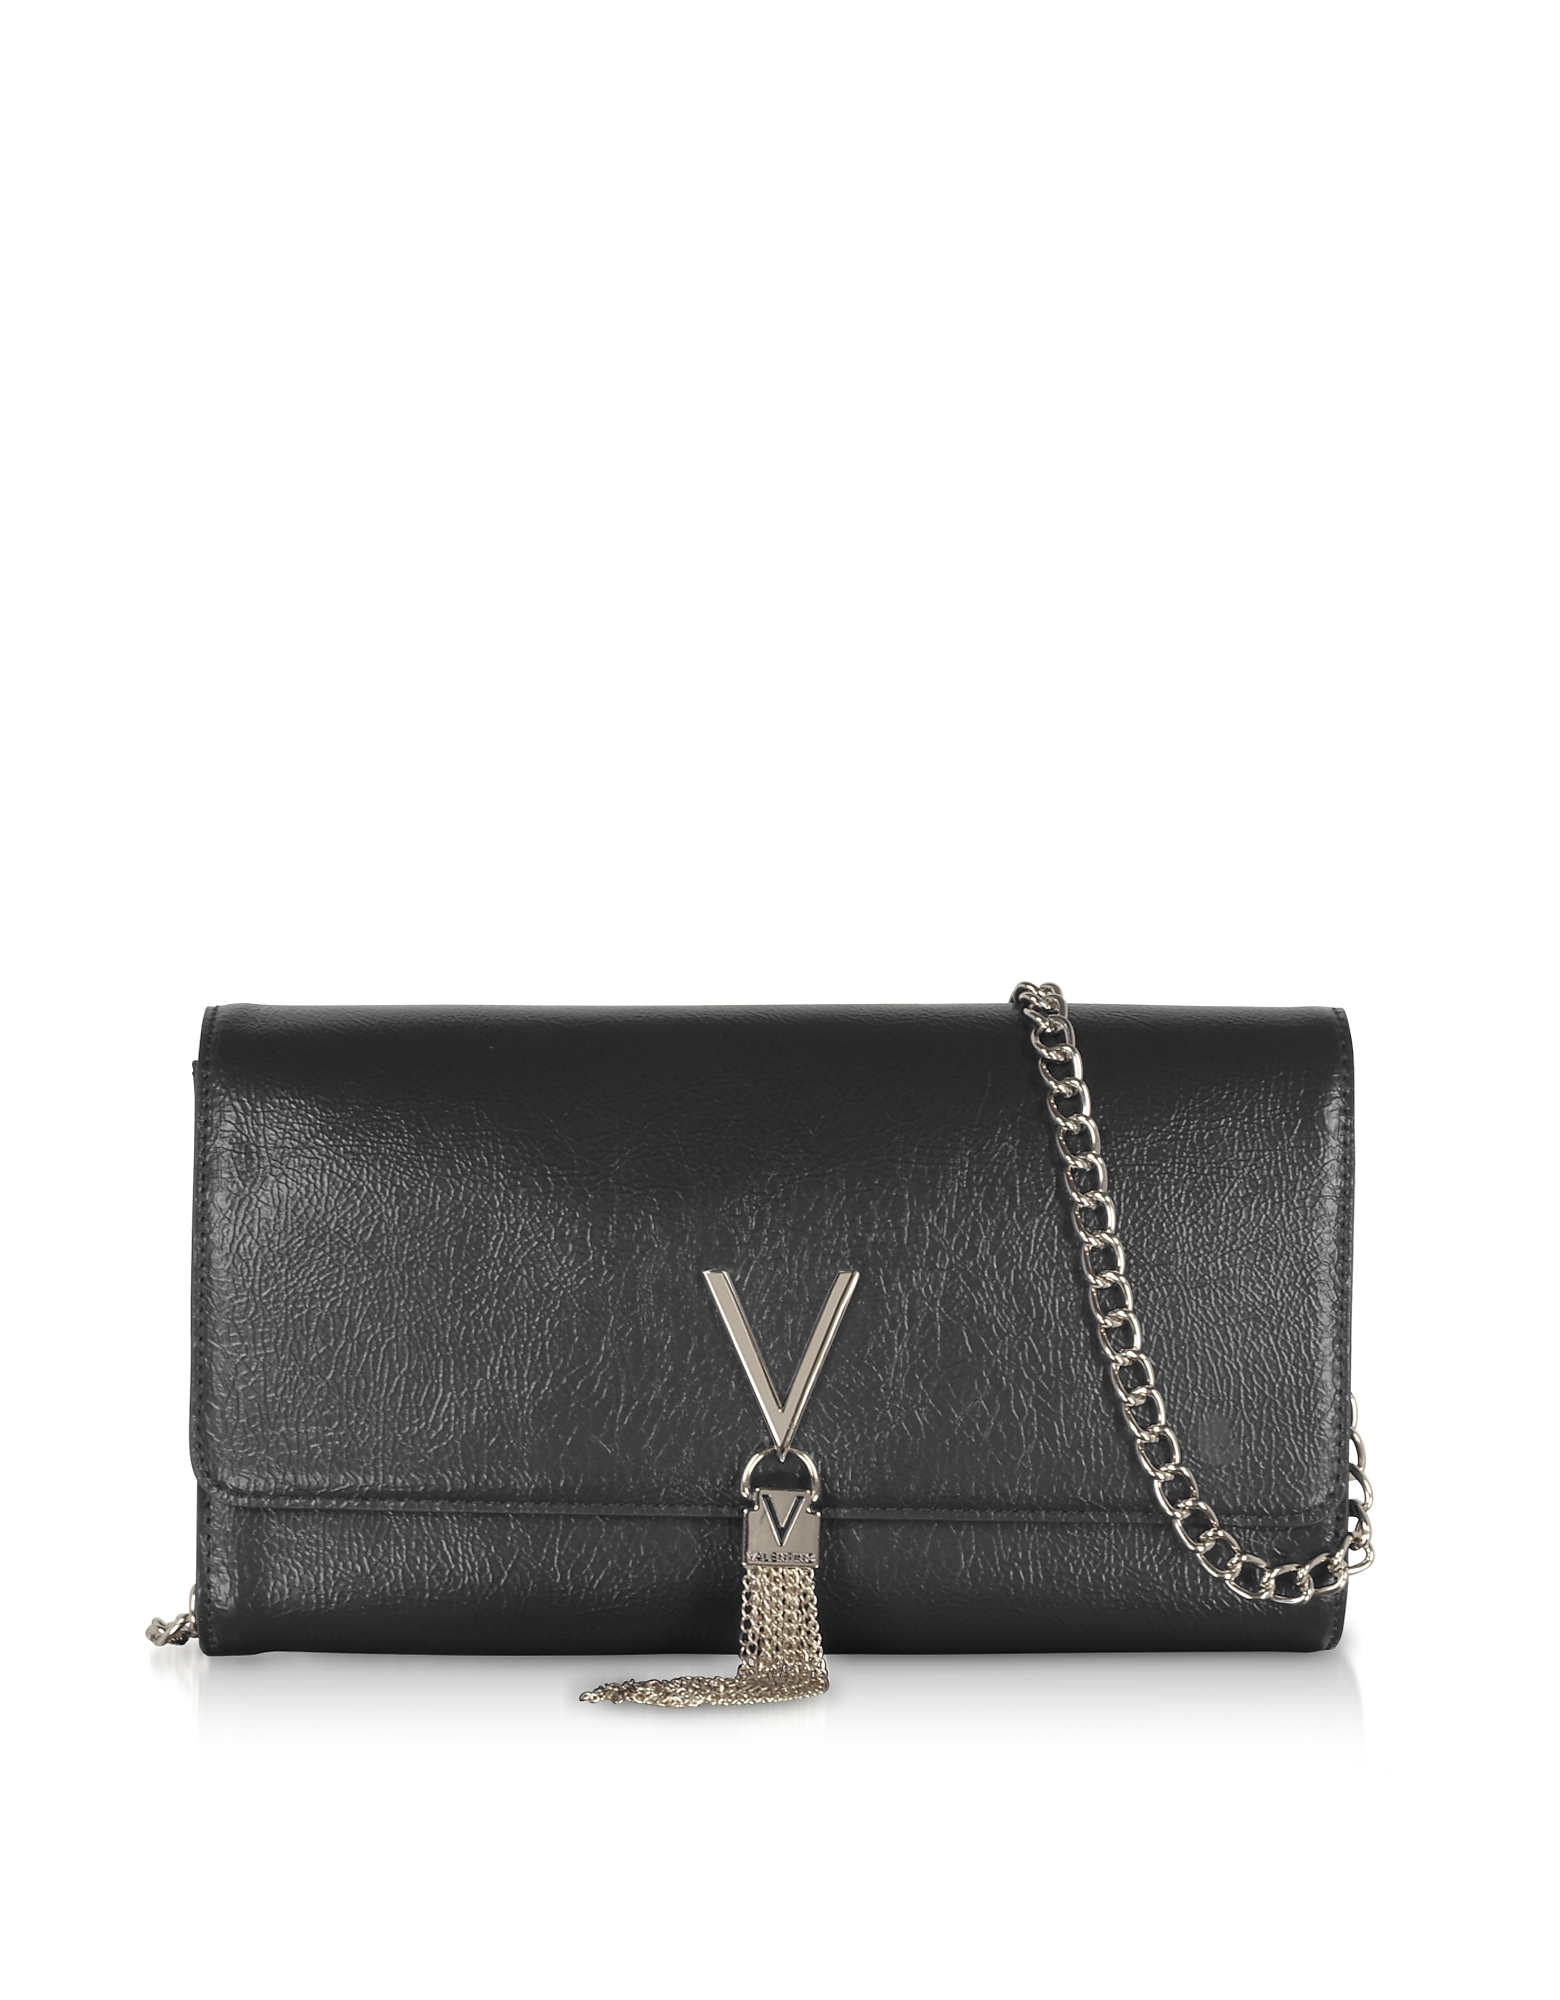 Oboe Eco Leather Clutch